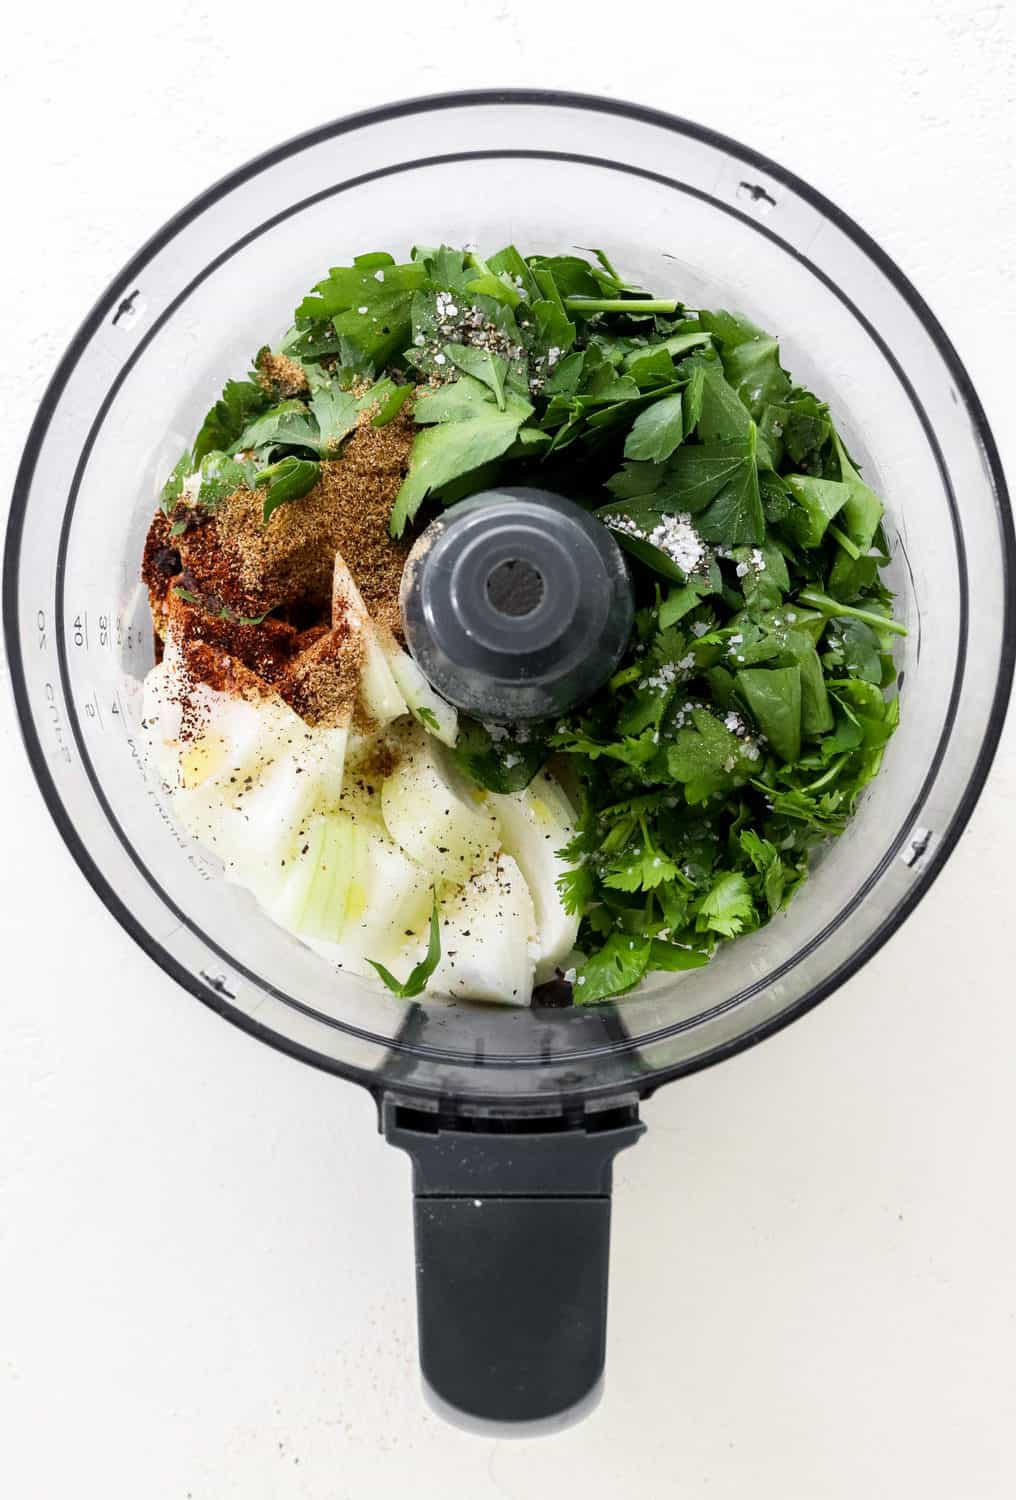 Bowl of a food processor filled with chopped onion and fresh herbs